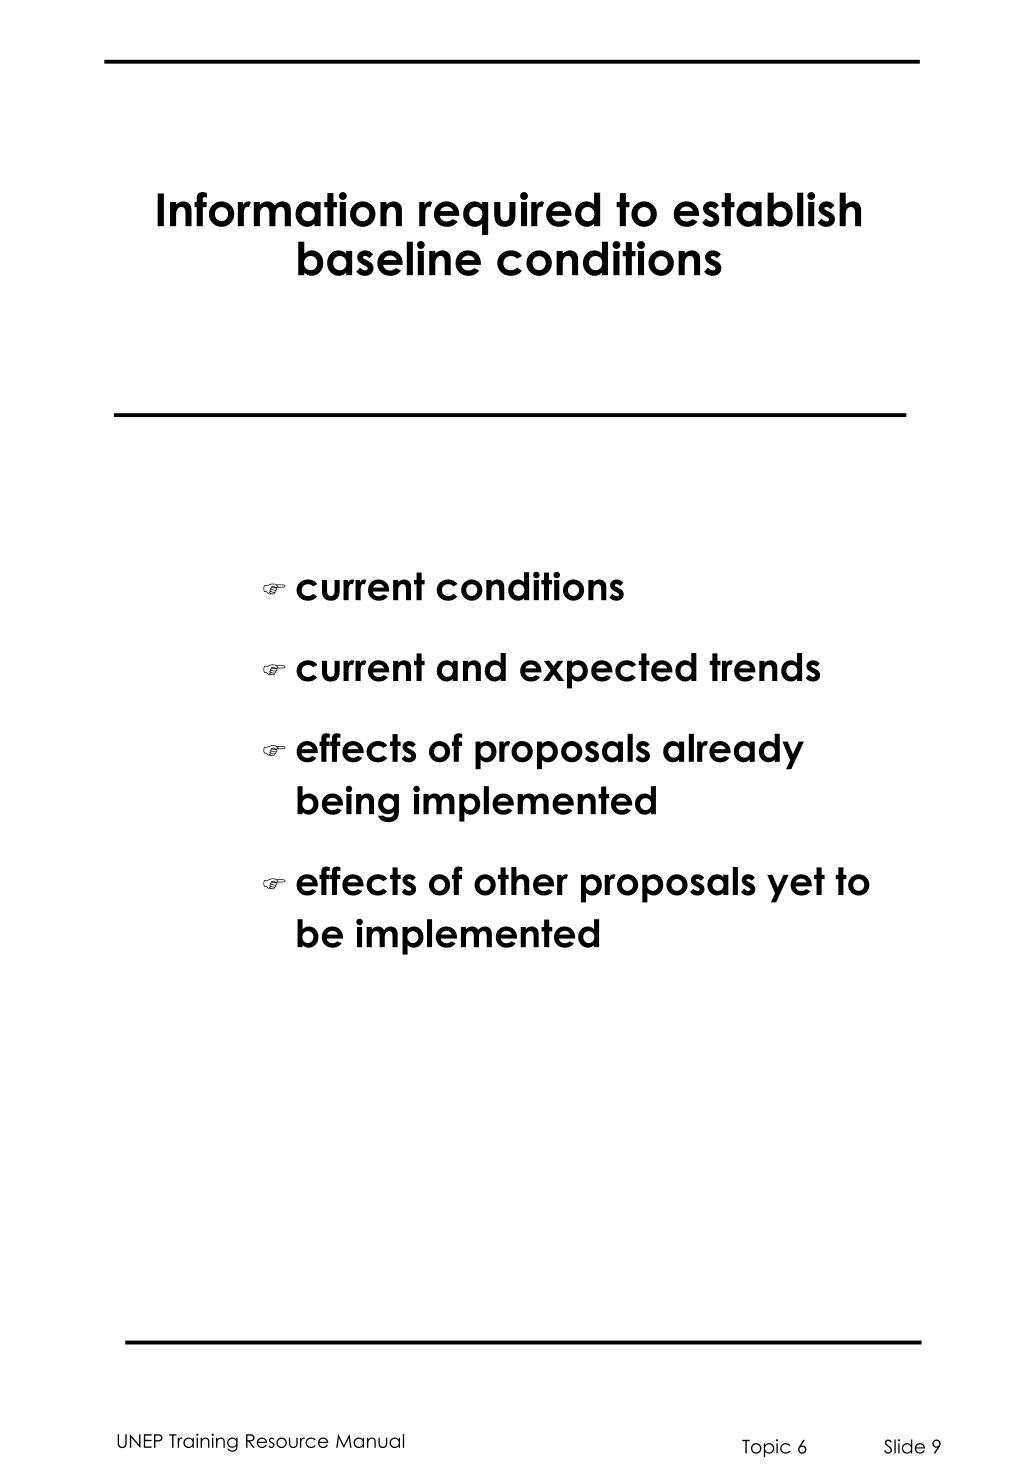 Information required to establish baseline conditions